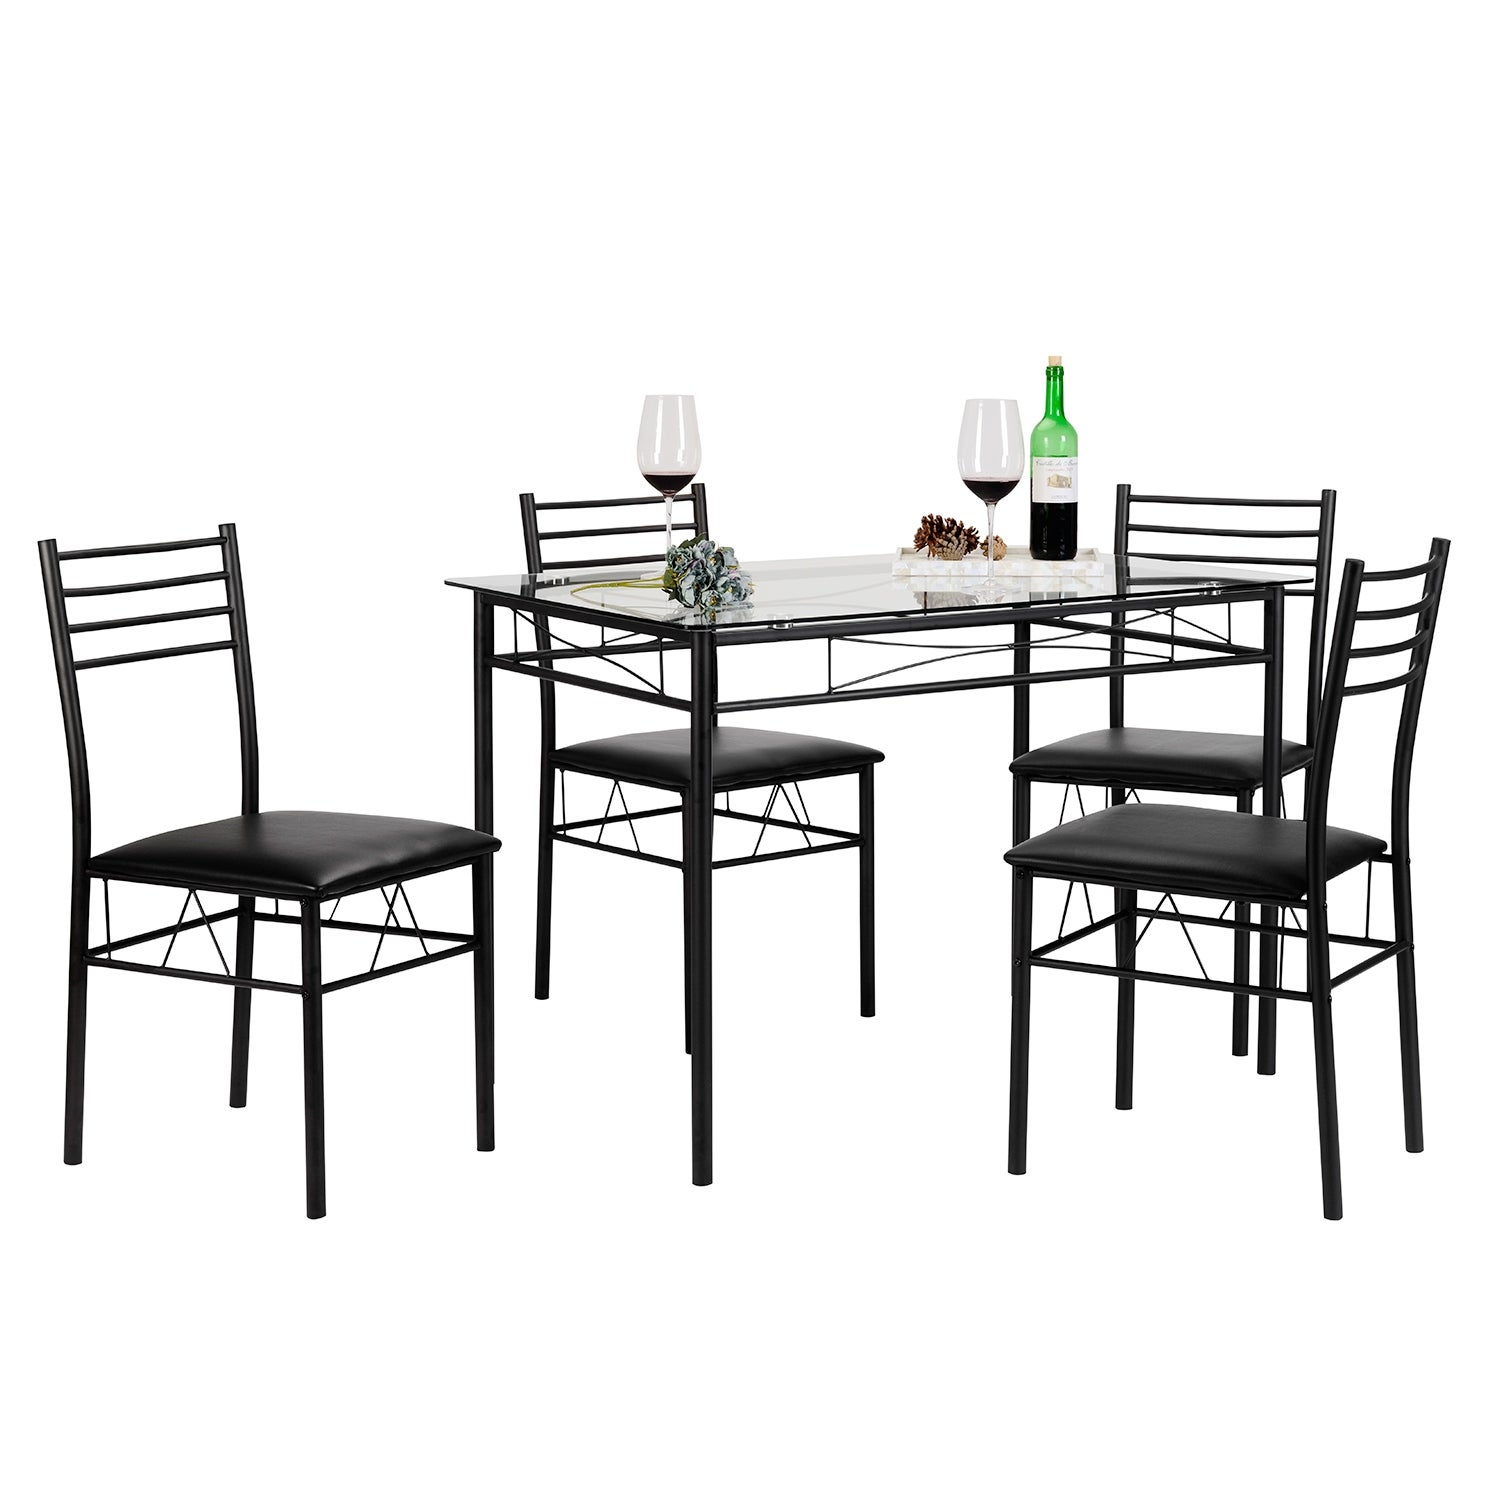 Shop VECELO Dining Table Set Glass Table and 4 Chairs Metal Kitchen Room Furniture 5 Pcs (Black) - Black - Free Shipping Today - Overstock.com - 13047157  sc 1 st  Overstock & Shop VECELO Dining Table Set Glass Table and 4 Chairs Metal Kitchen ...